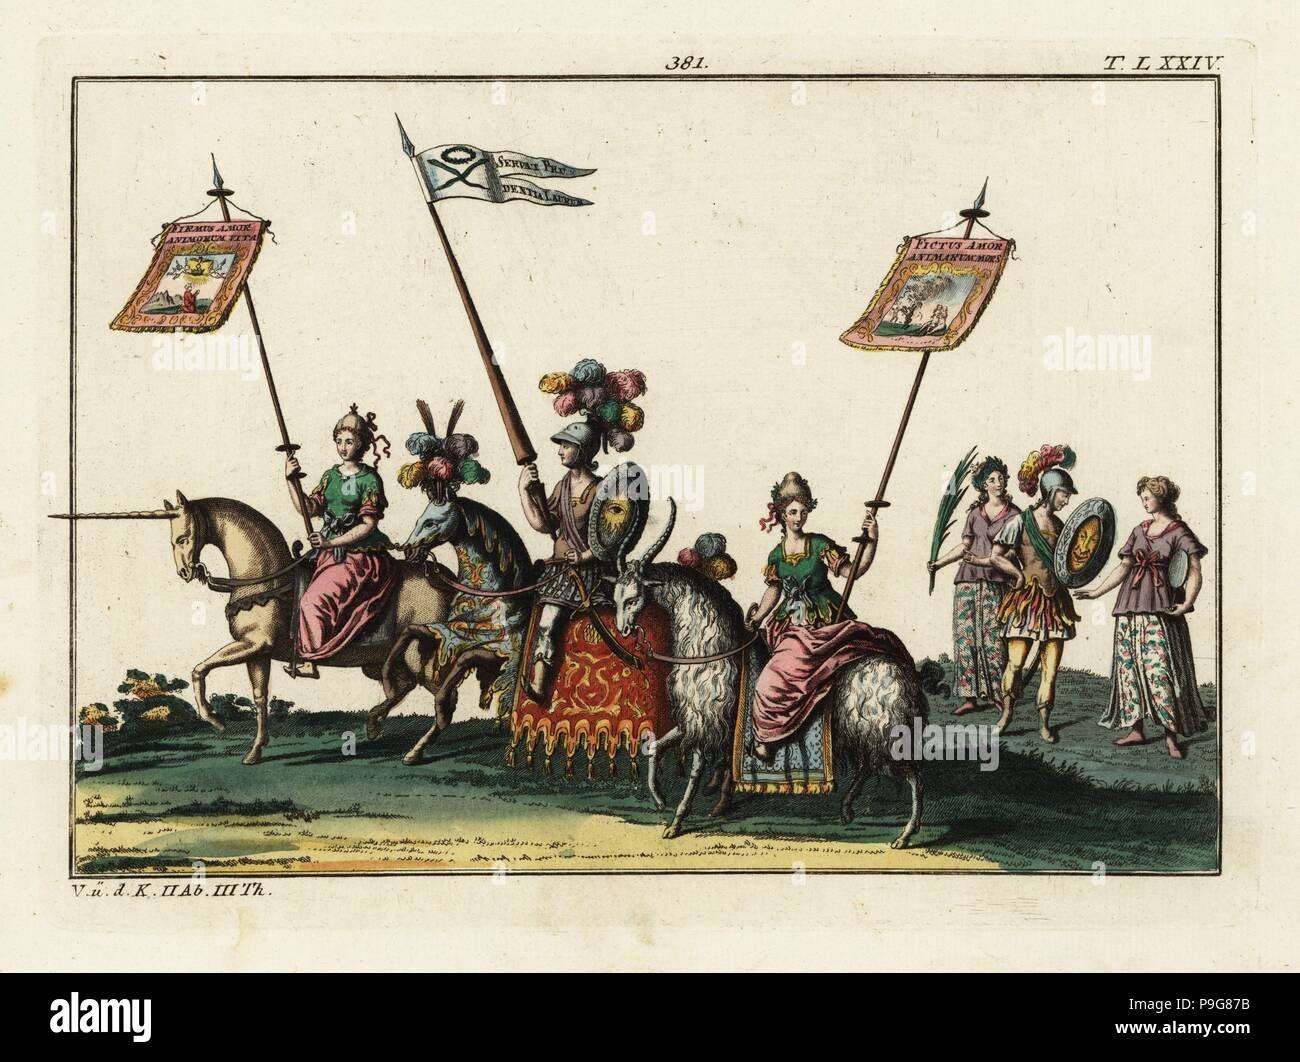 A procession with riders mounted on a unicorn, a goat and a horse wearing heraldic colours. The male and female riders hold lances with banners. Part of the celebration of the birth of Freiderich, Duke of Wurttemberg. Taken from Delineation und Abbildung aller furstlichen Aufzug und Ritterspielen by Esaias von Hulsen, 1617. Handcoloured copperplate engraving from Robert von Spalart's Historical Picture of the Costumes of the Principal People of Antiquity and of the Middle Ages, Chez Collignon, Metz, 1810. - Stock Image